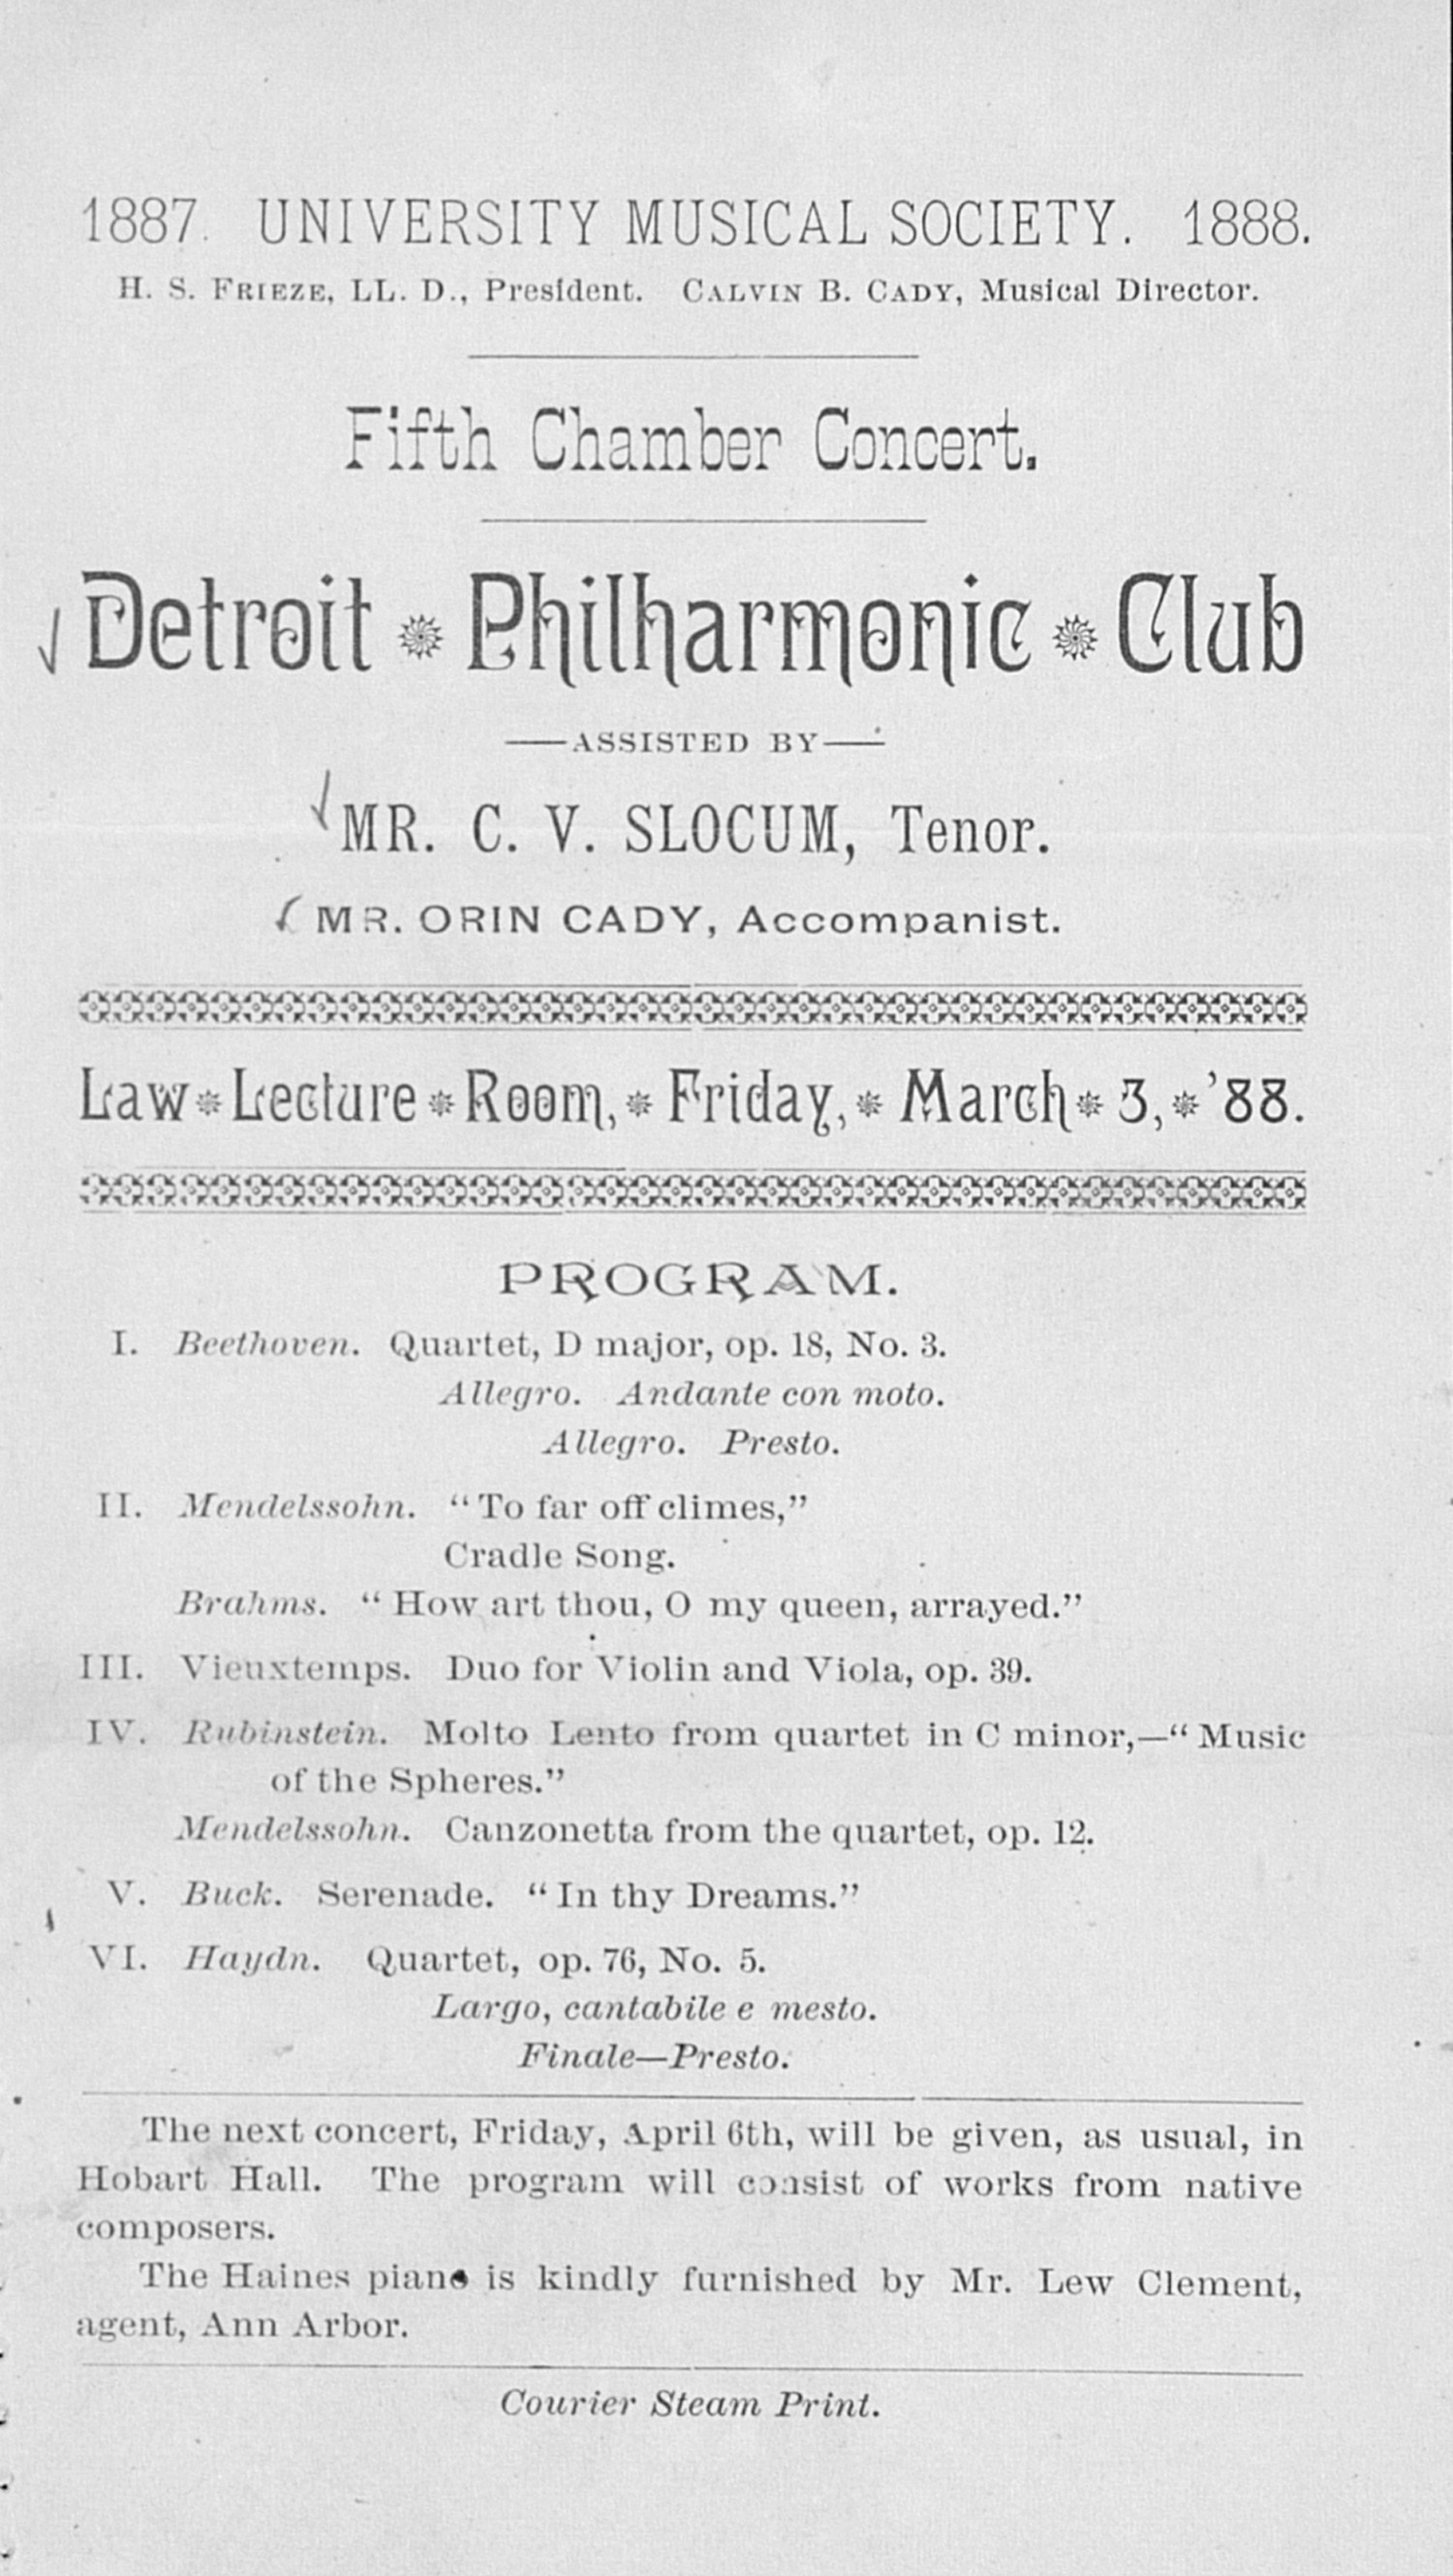 UMS Concert Program, March 3,'88: Fifth Chamber Concert -- Detroit Philharmonic Club image